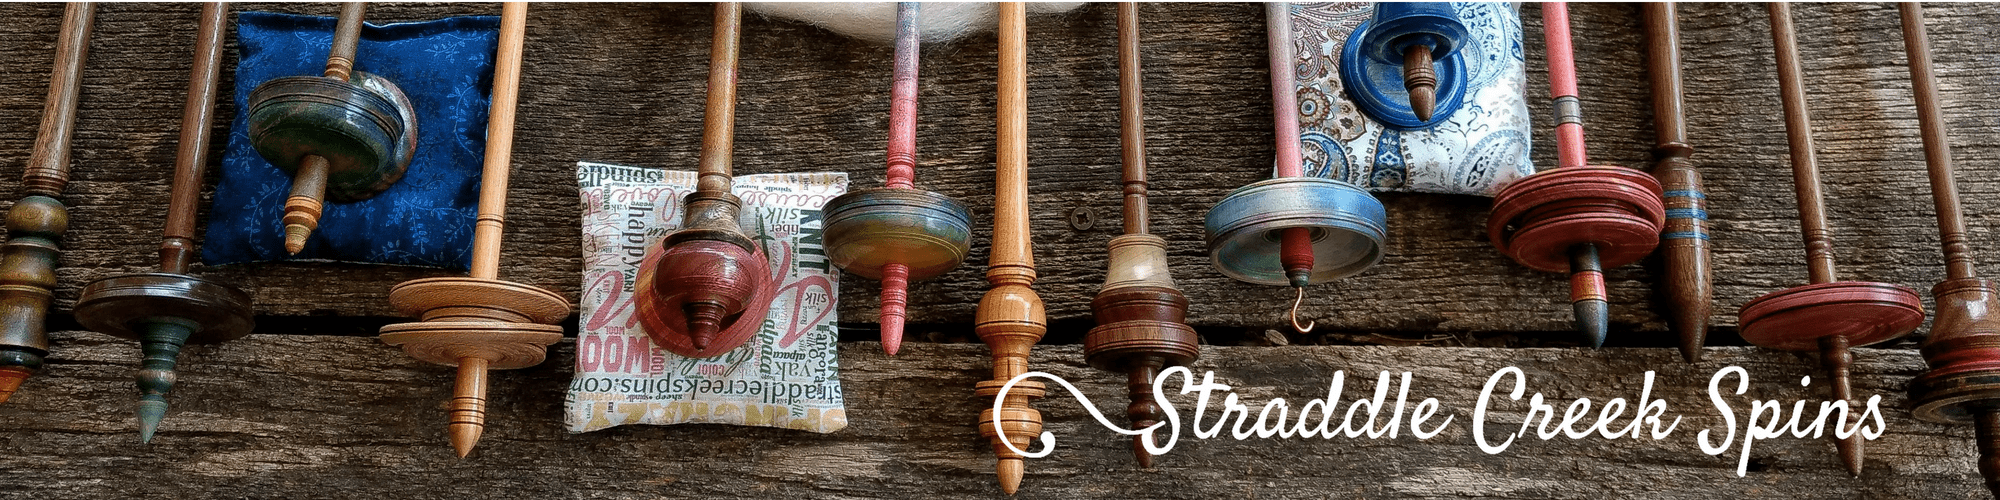 A collection of artisan spindles by John Hunter